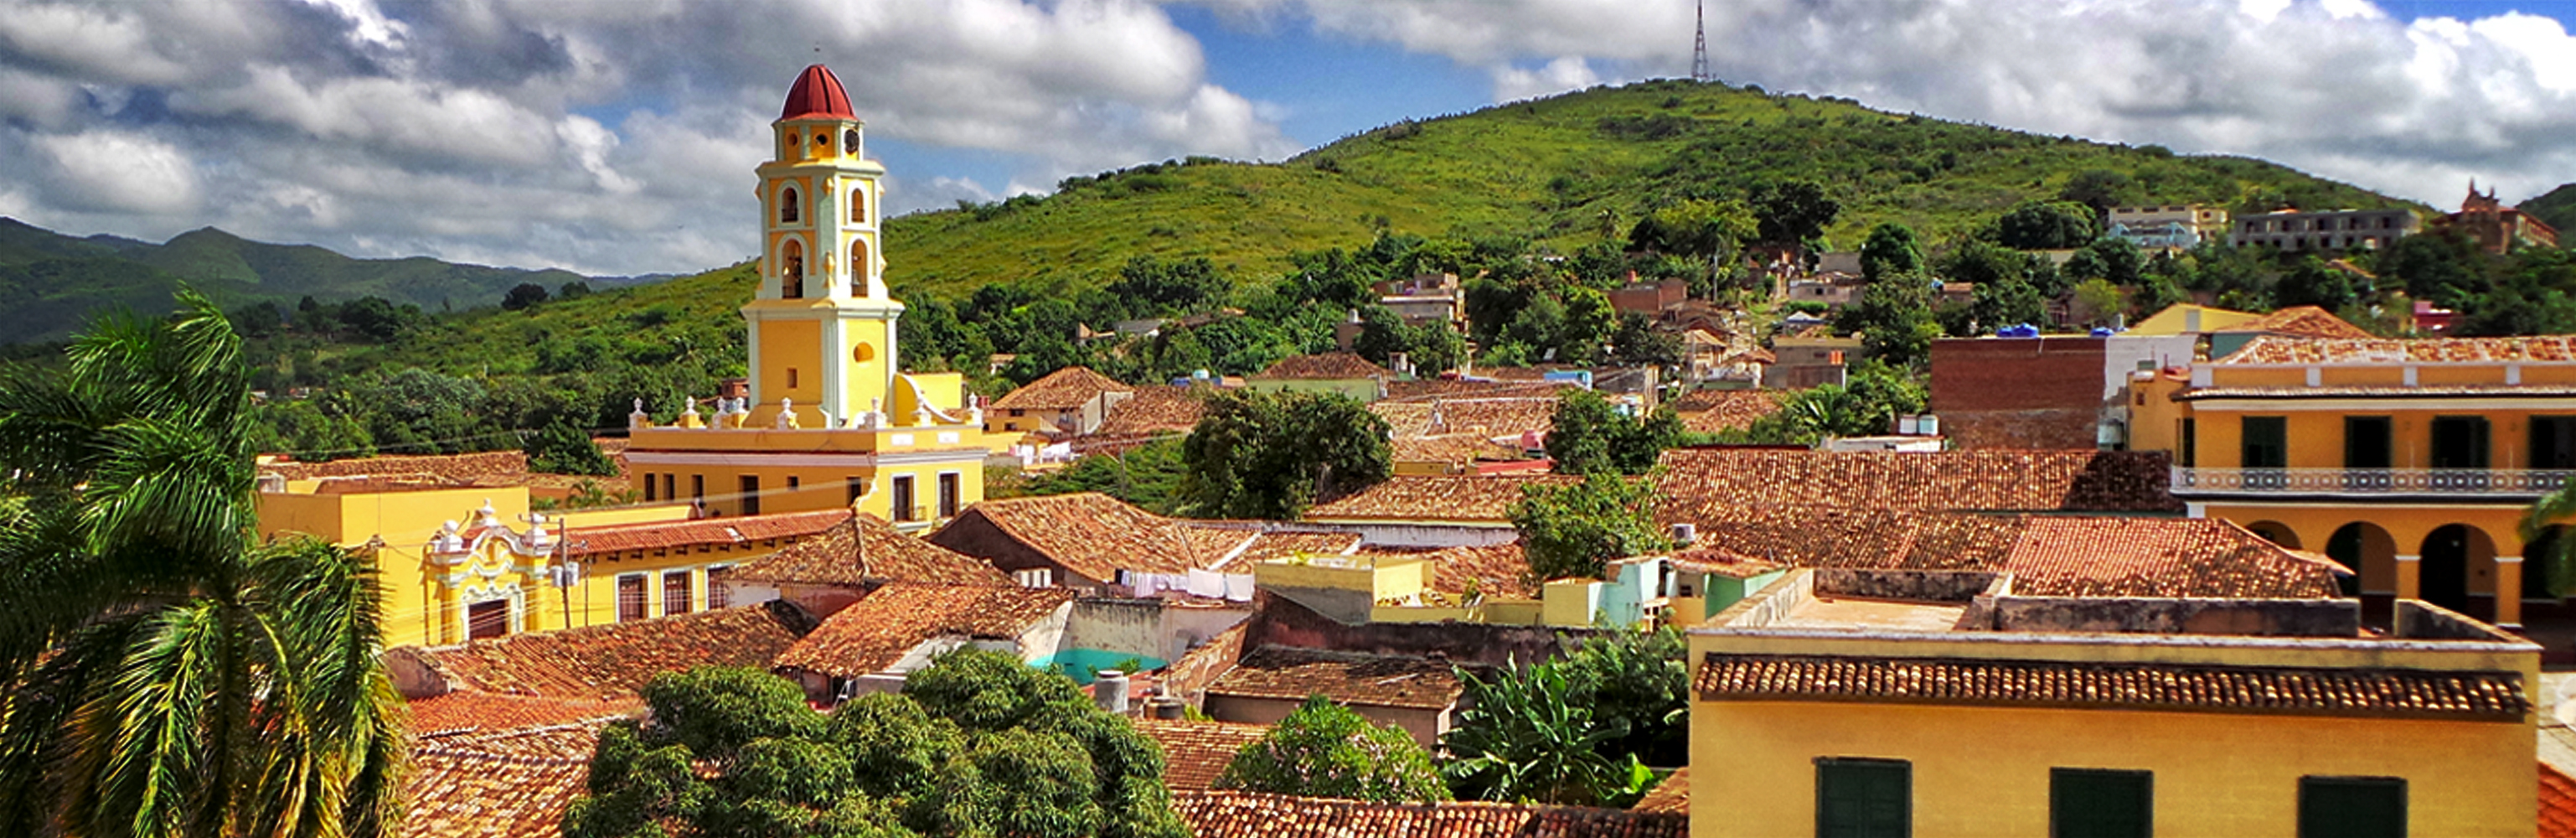 nation_travel_slider_cuba-landscapes_1_1230x400_n1.jpg